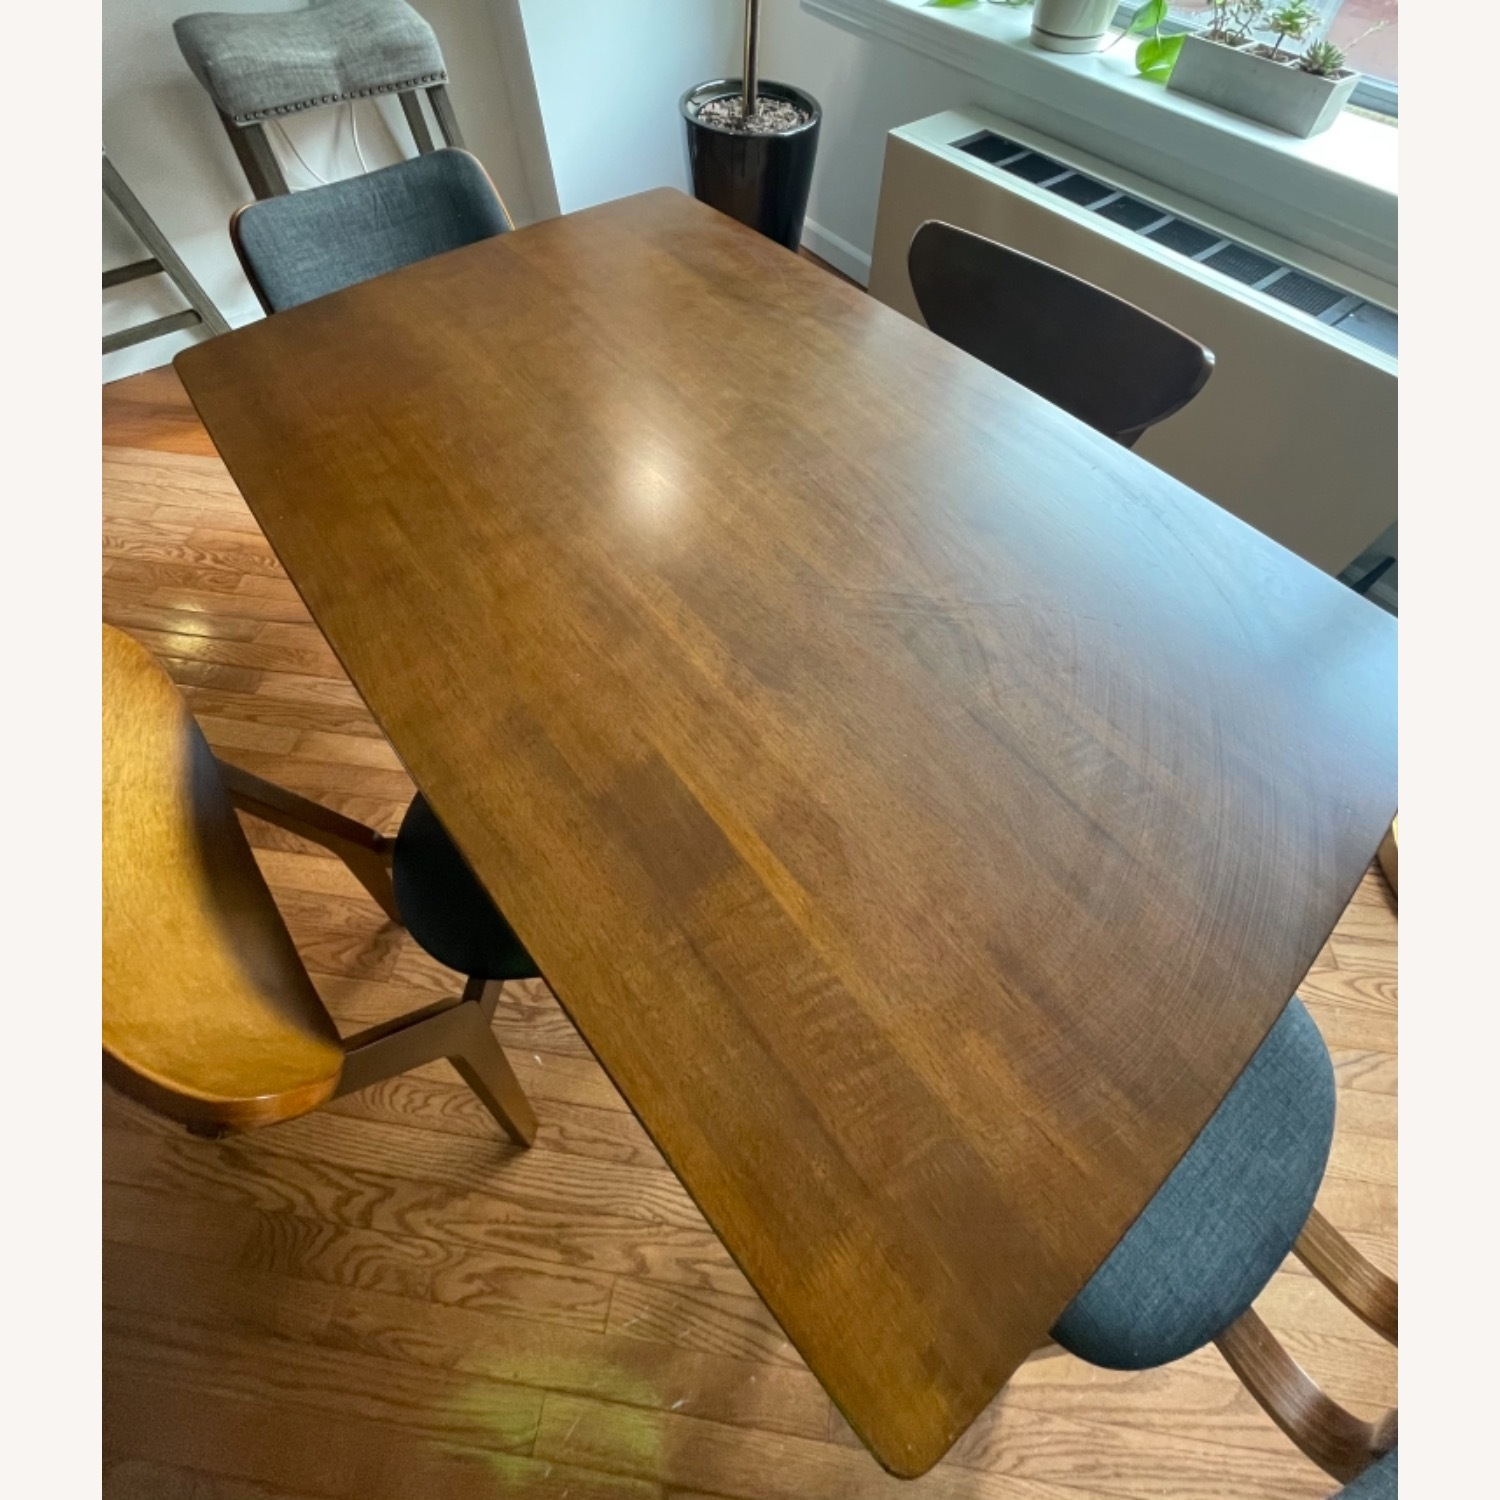 Dining Table Set & Chairs in Walnut Finish - image-1